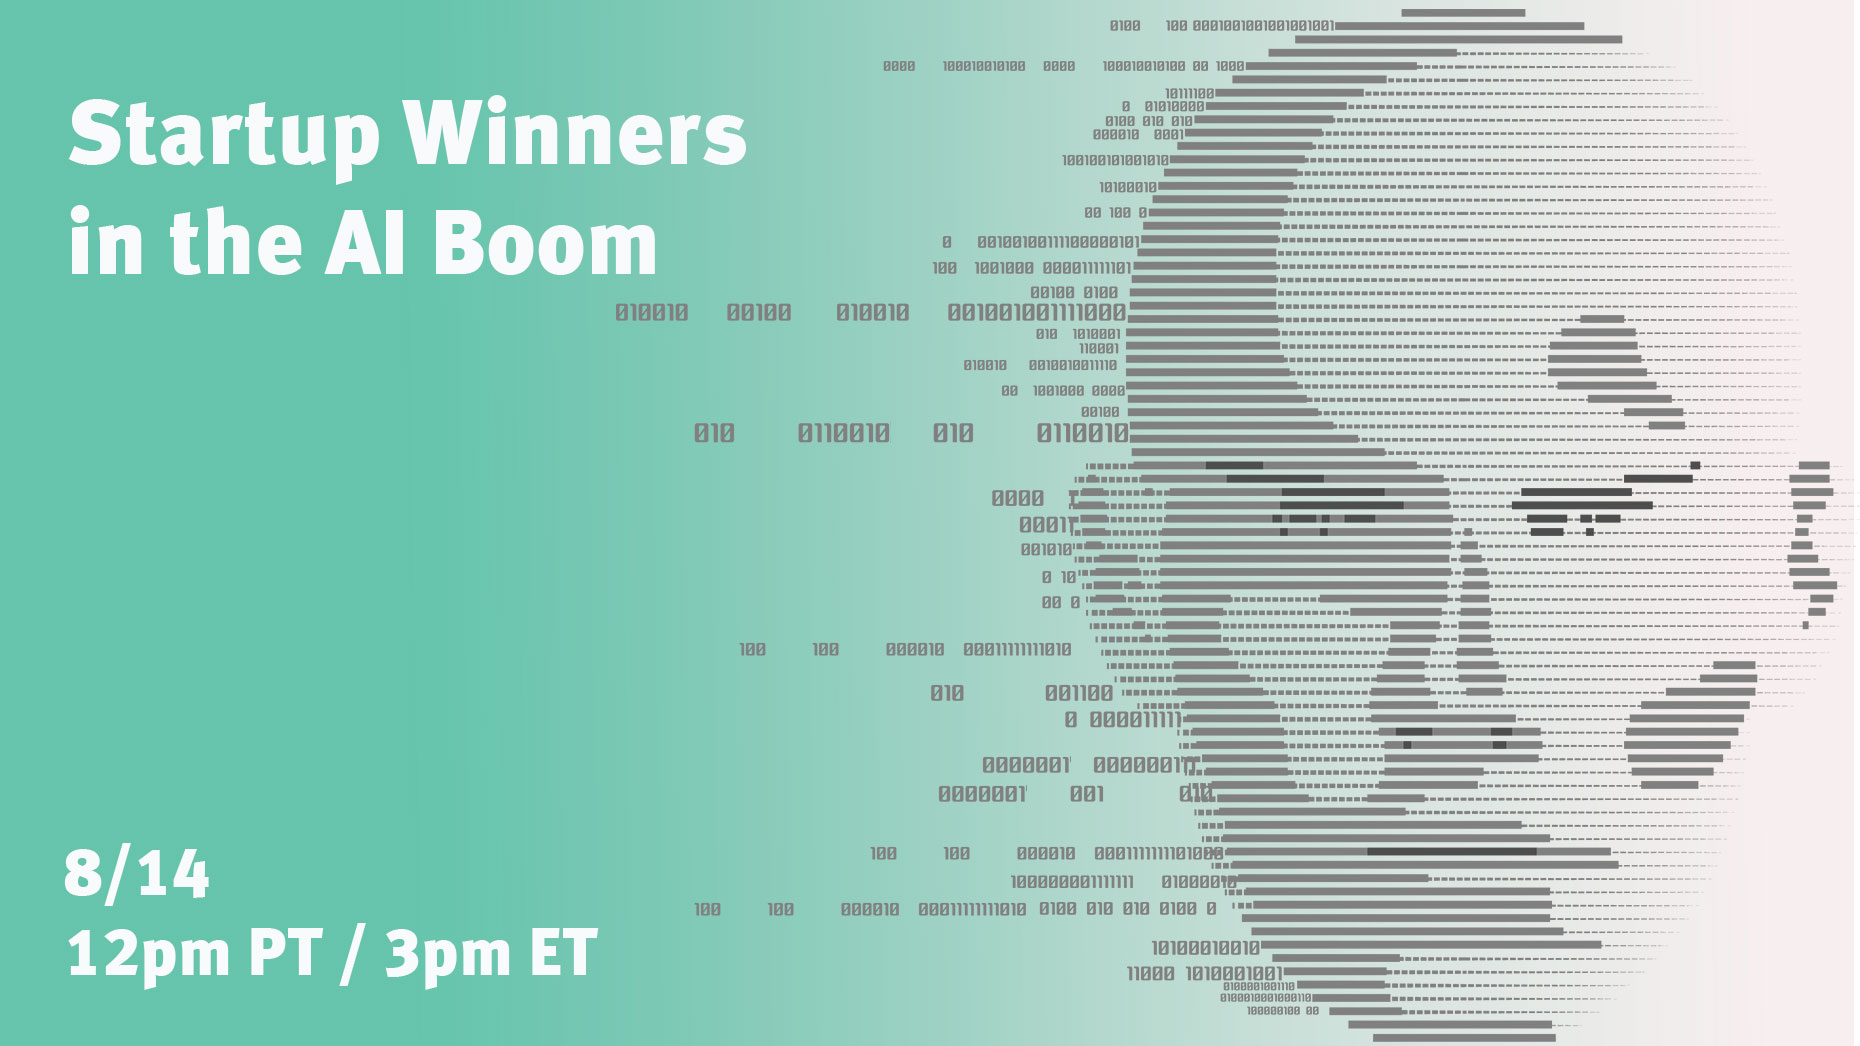 Startup Winners in the AI Boom